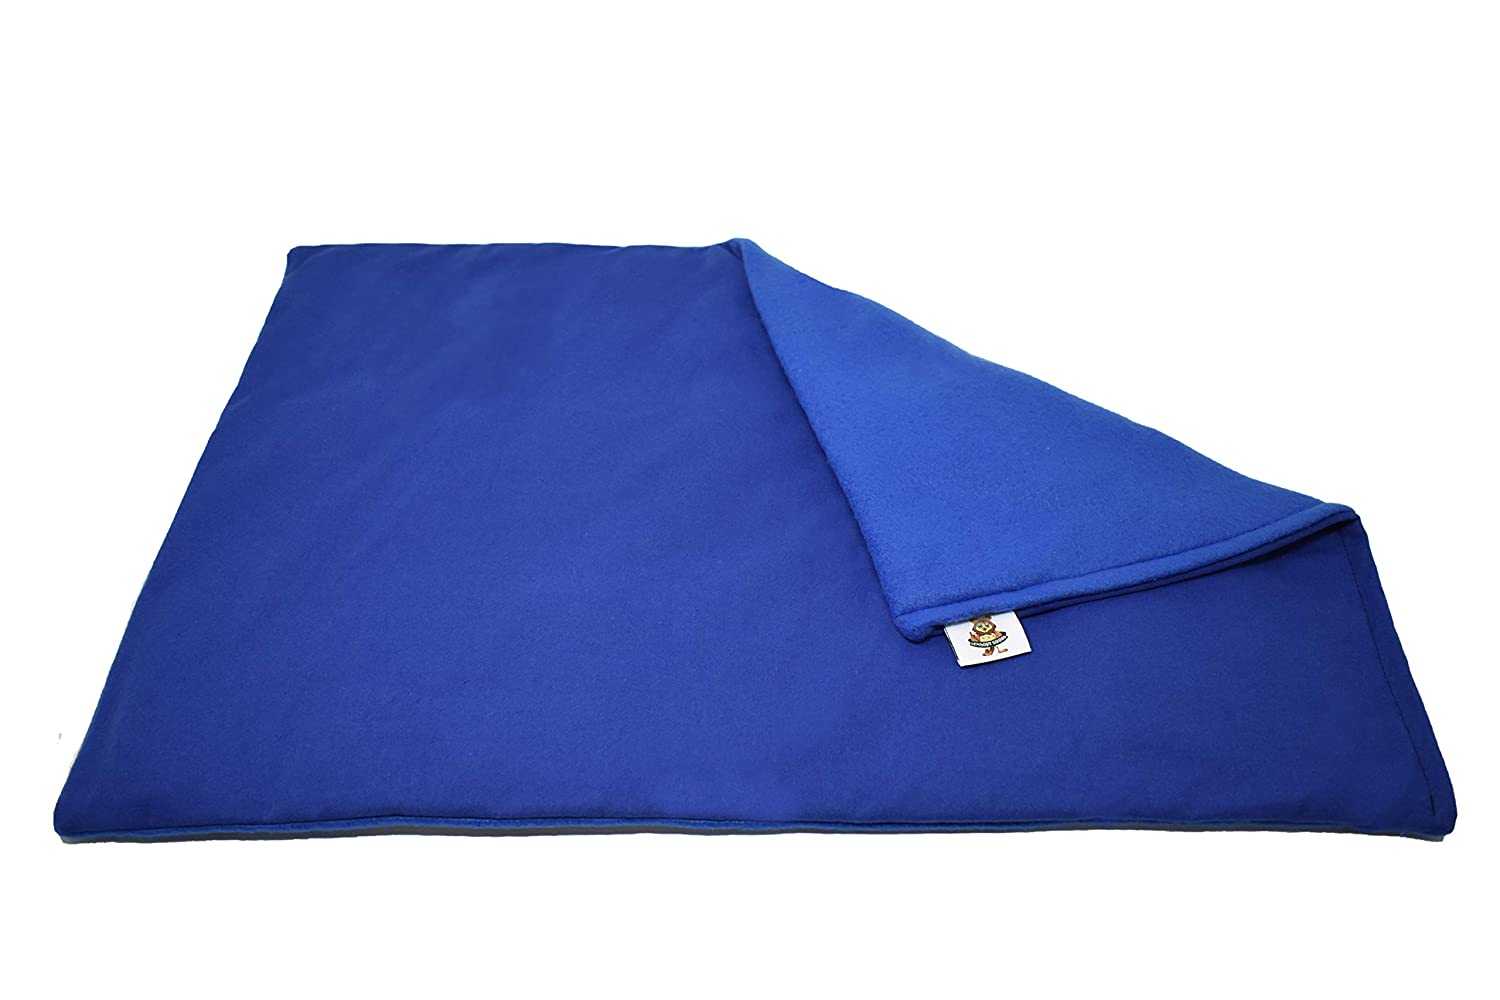 """Sensory Goods Small Weighted Lap Pad - 3lb - 12"""" x 16"""" (Blue)"""